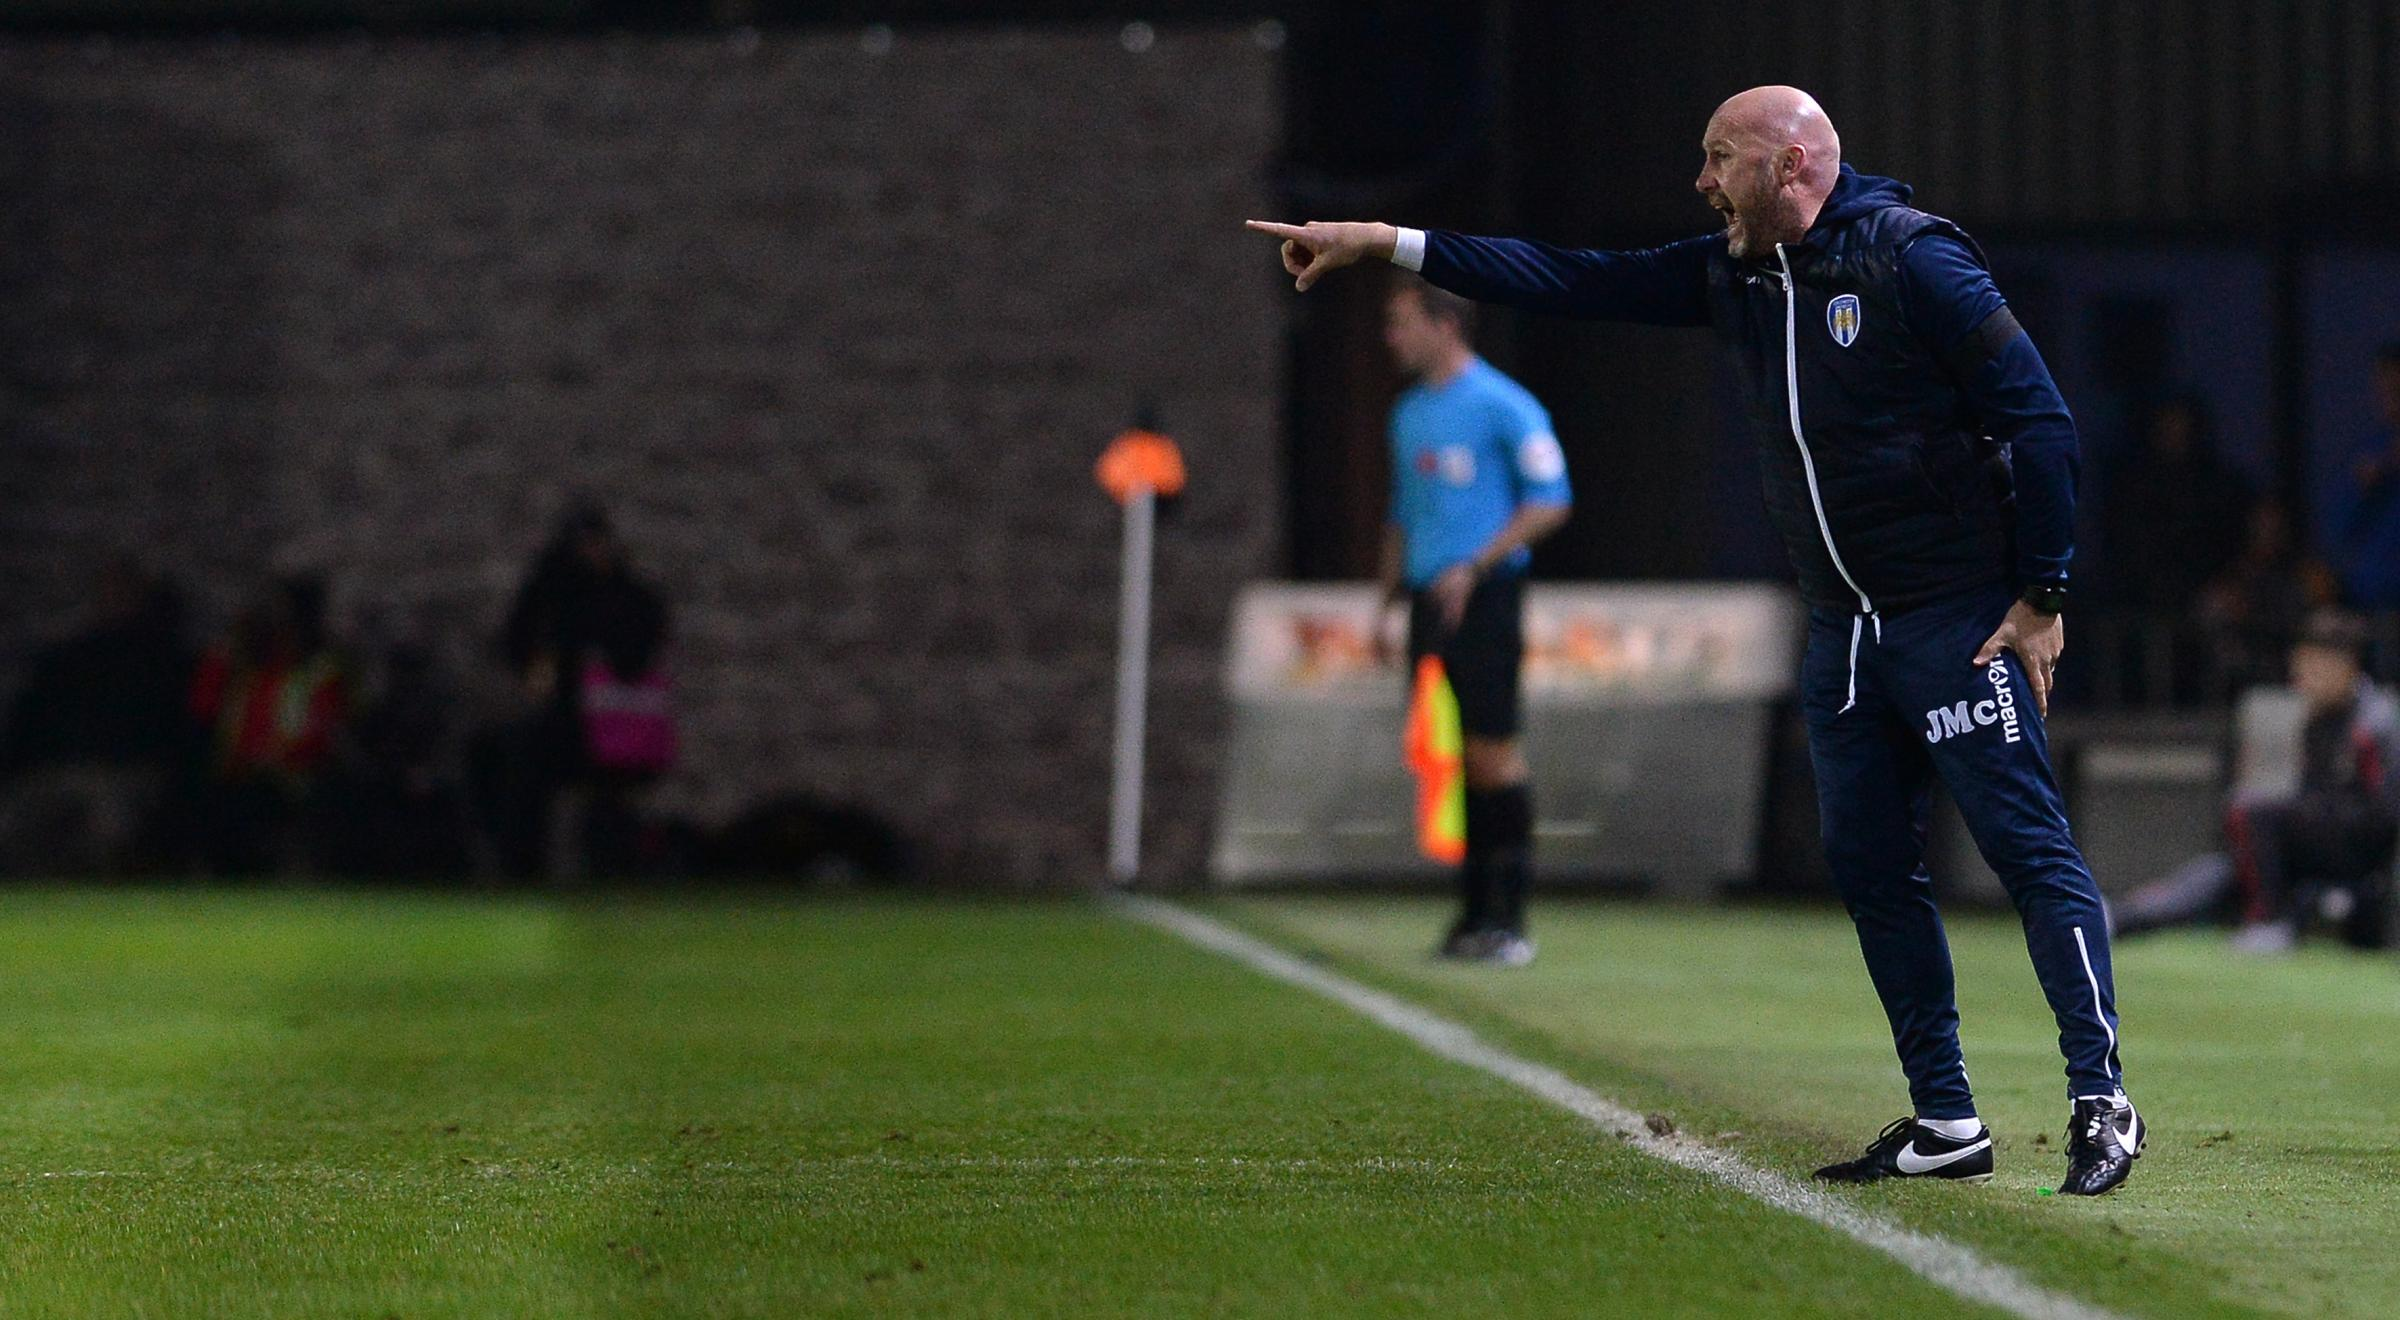 Guidance - Colchester United head coach John McGreal pointing the way at Newport County Picture: PAGEPIX